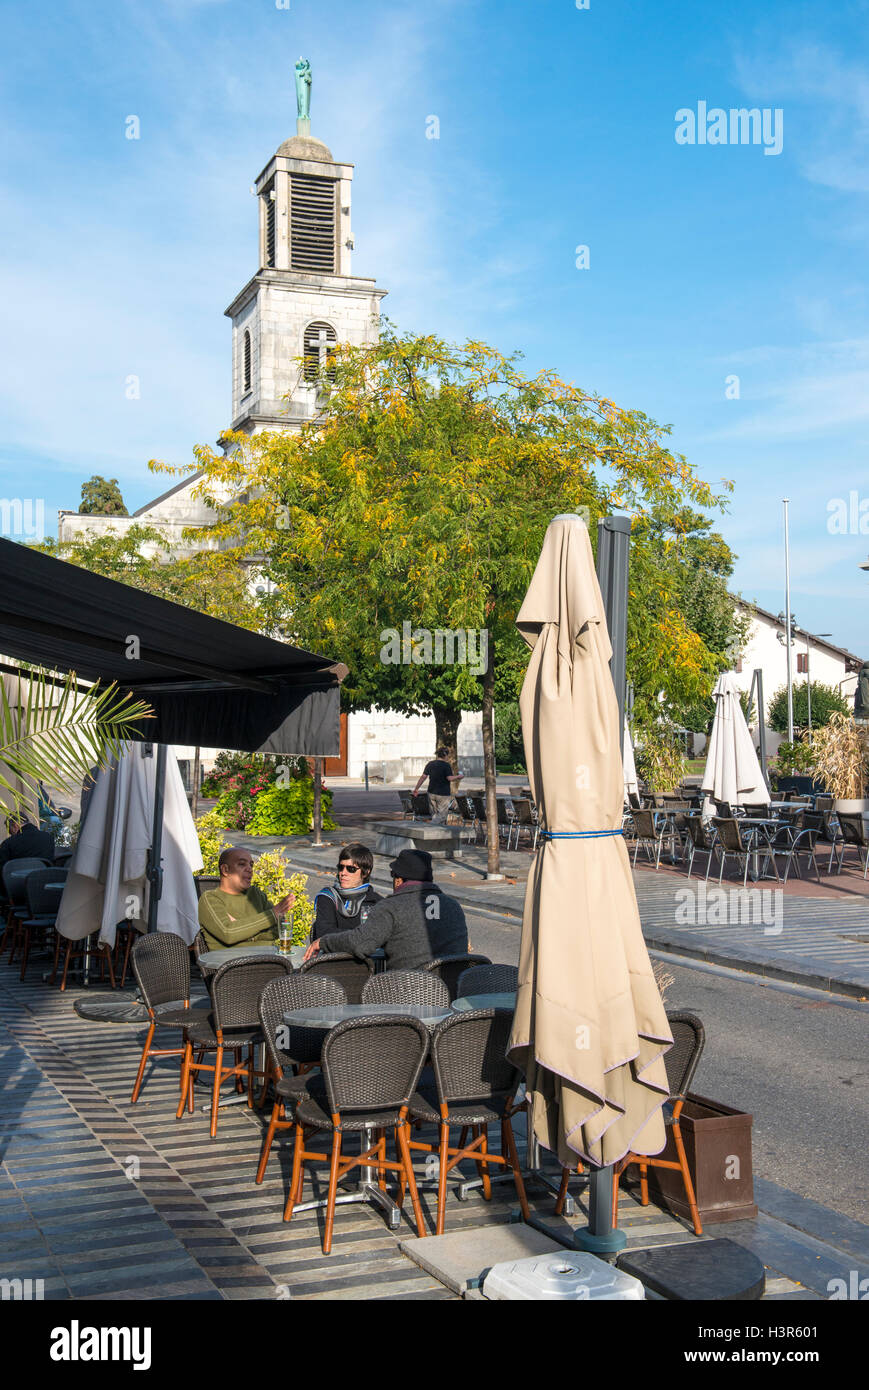 People sitting in street cafe, Divonne les bains,  Ain department in eastern France - Stock Image